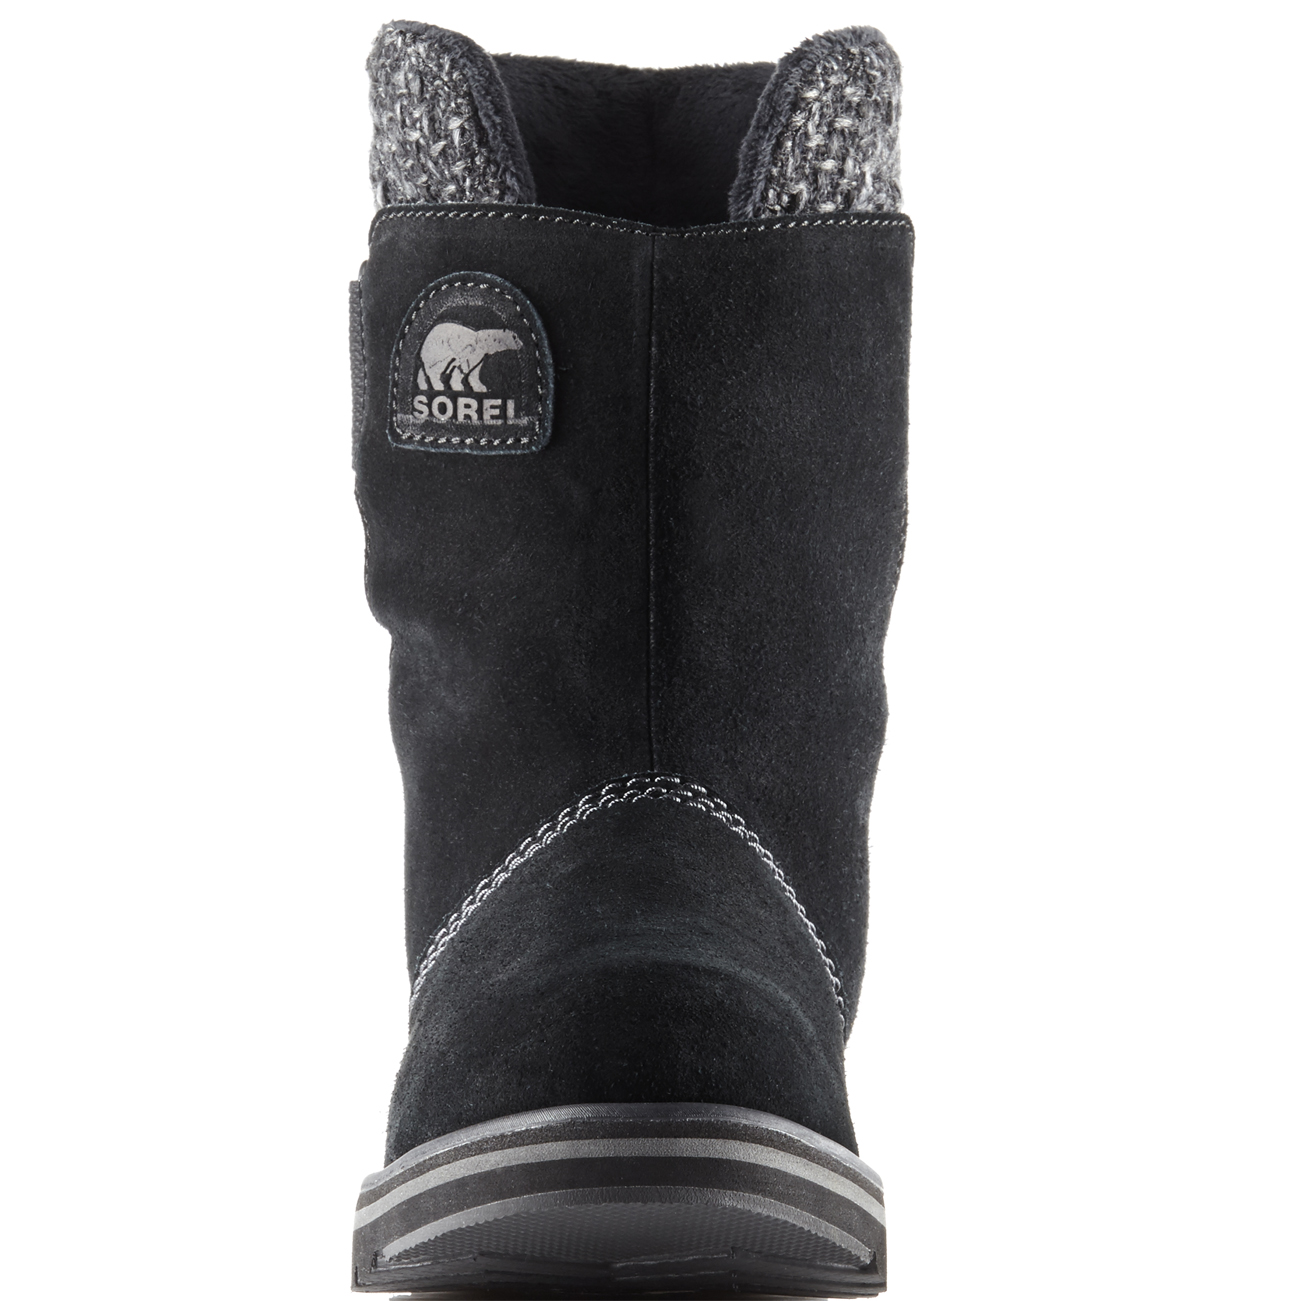 Womens Sorel Rylee Snow Warm Suede Winter Mid Calf Rain Waterproof ... 6bf68a6c89